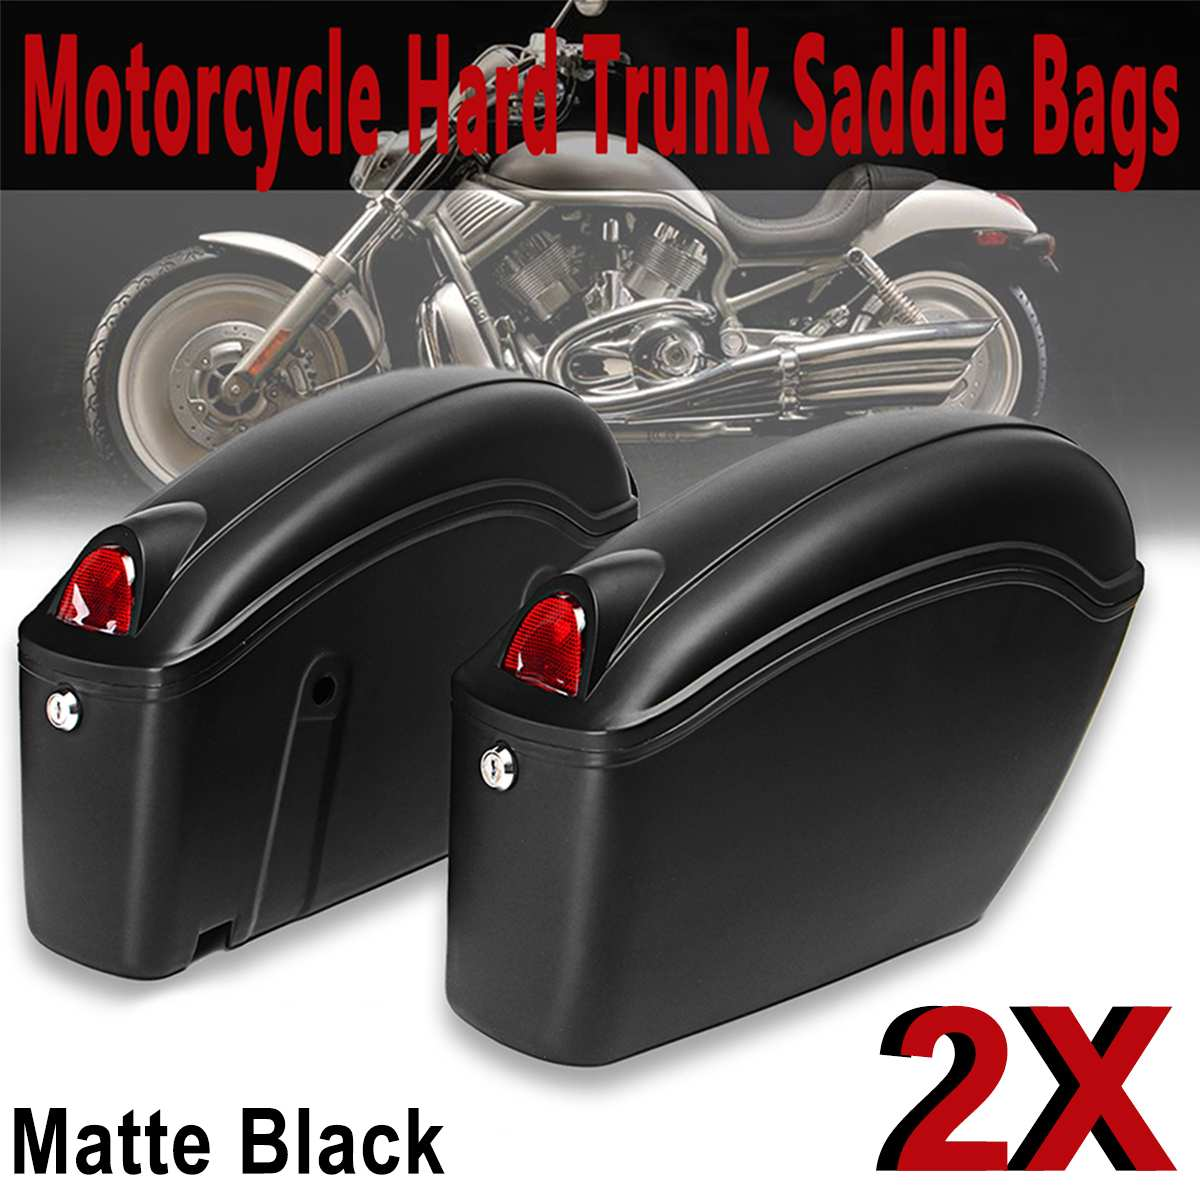 26L Hard Trunk Matte Black Universal Hard Saddlebags For Harley for Honda for Suzuki for Kawasaki26L Hard Trunk Matte Black Universal Hard Saddlebags For Harley for Honda for Suzuki for Kawasaki